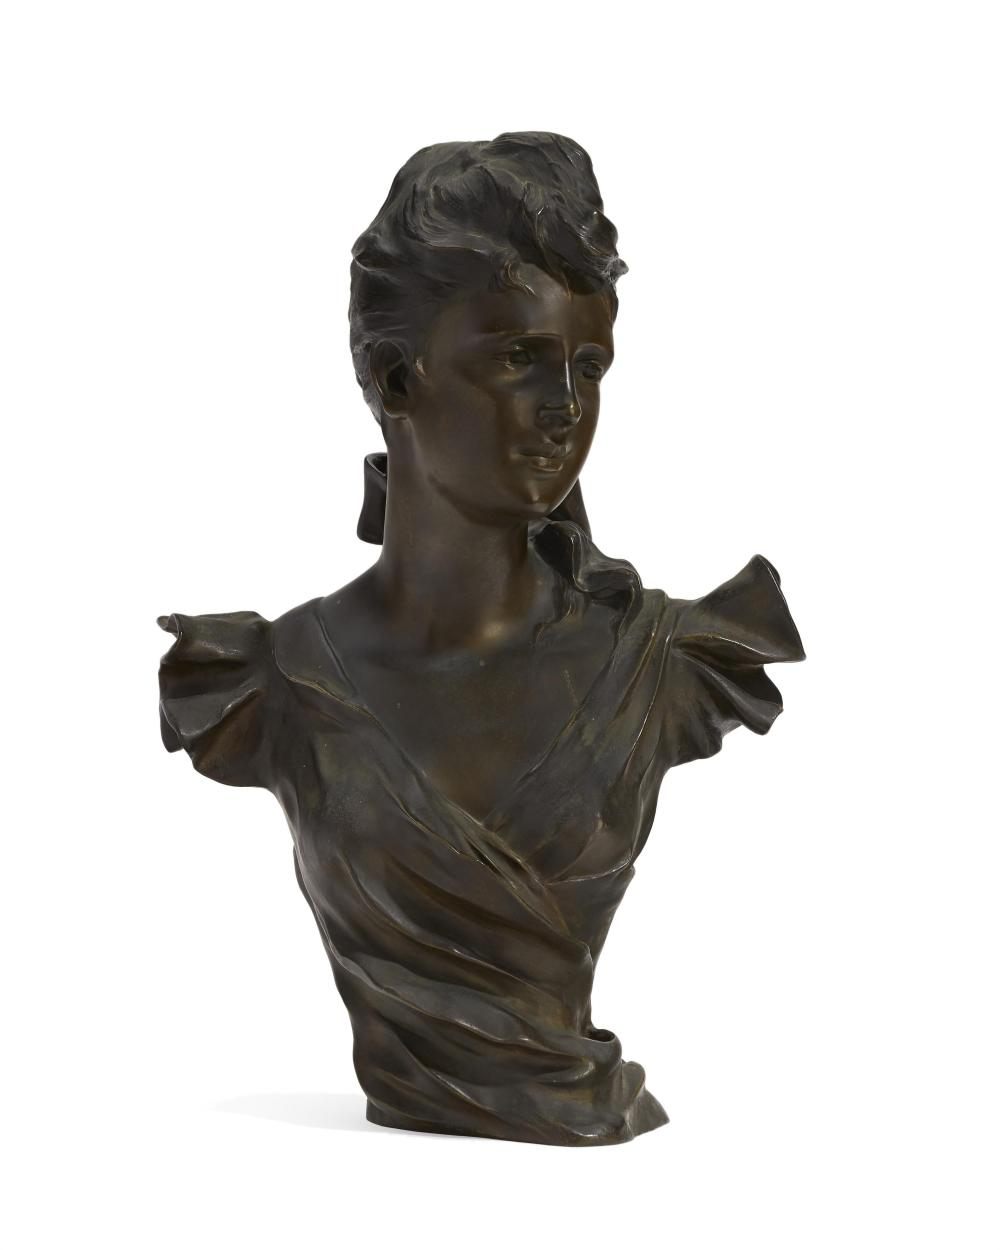 """After George Charles Coudray, (1883-1932 French), Bust of a woman, Patinated bronze, 20.25"""" H x 14"""" W x 7.25"""" D"""